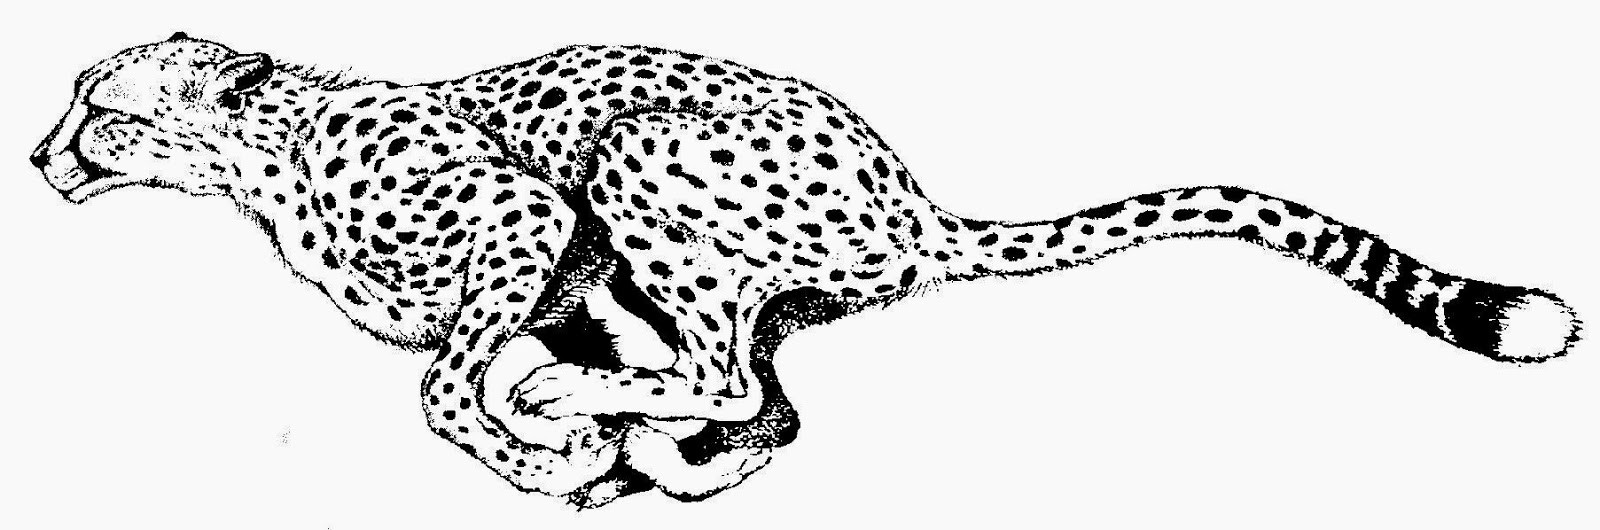 Cheetah black and white clipart 4 » Clipart Station.